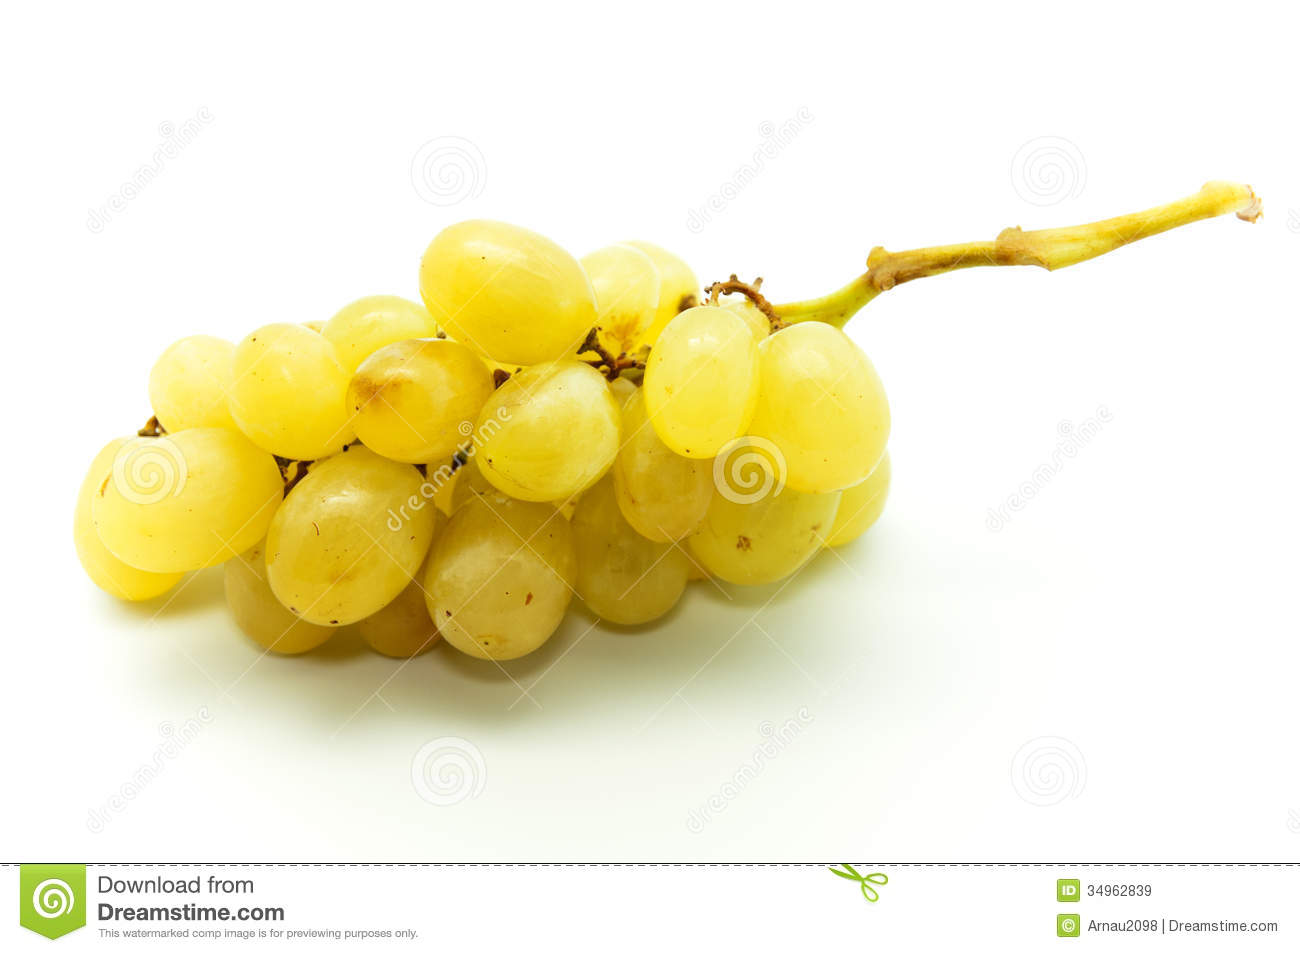 Yellow Grapes Royalty Free Stock Images - Image: 34962839